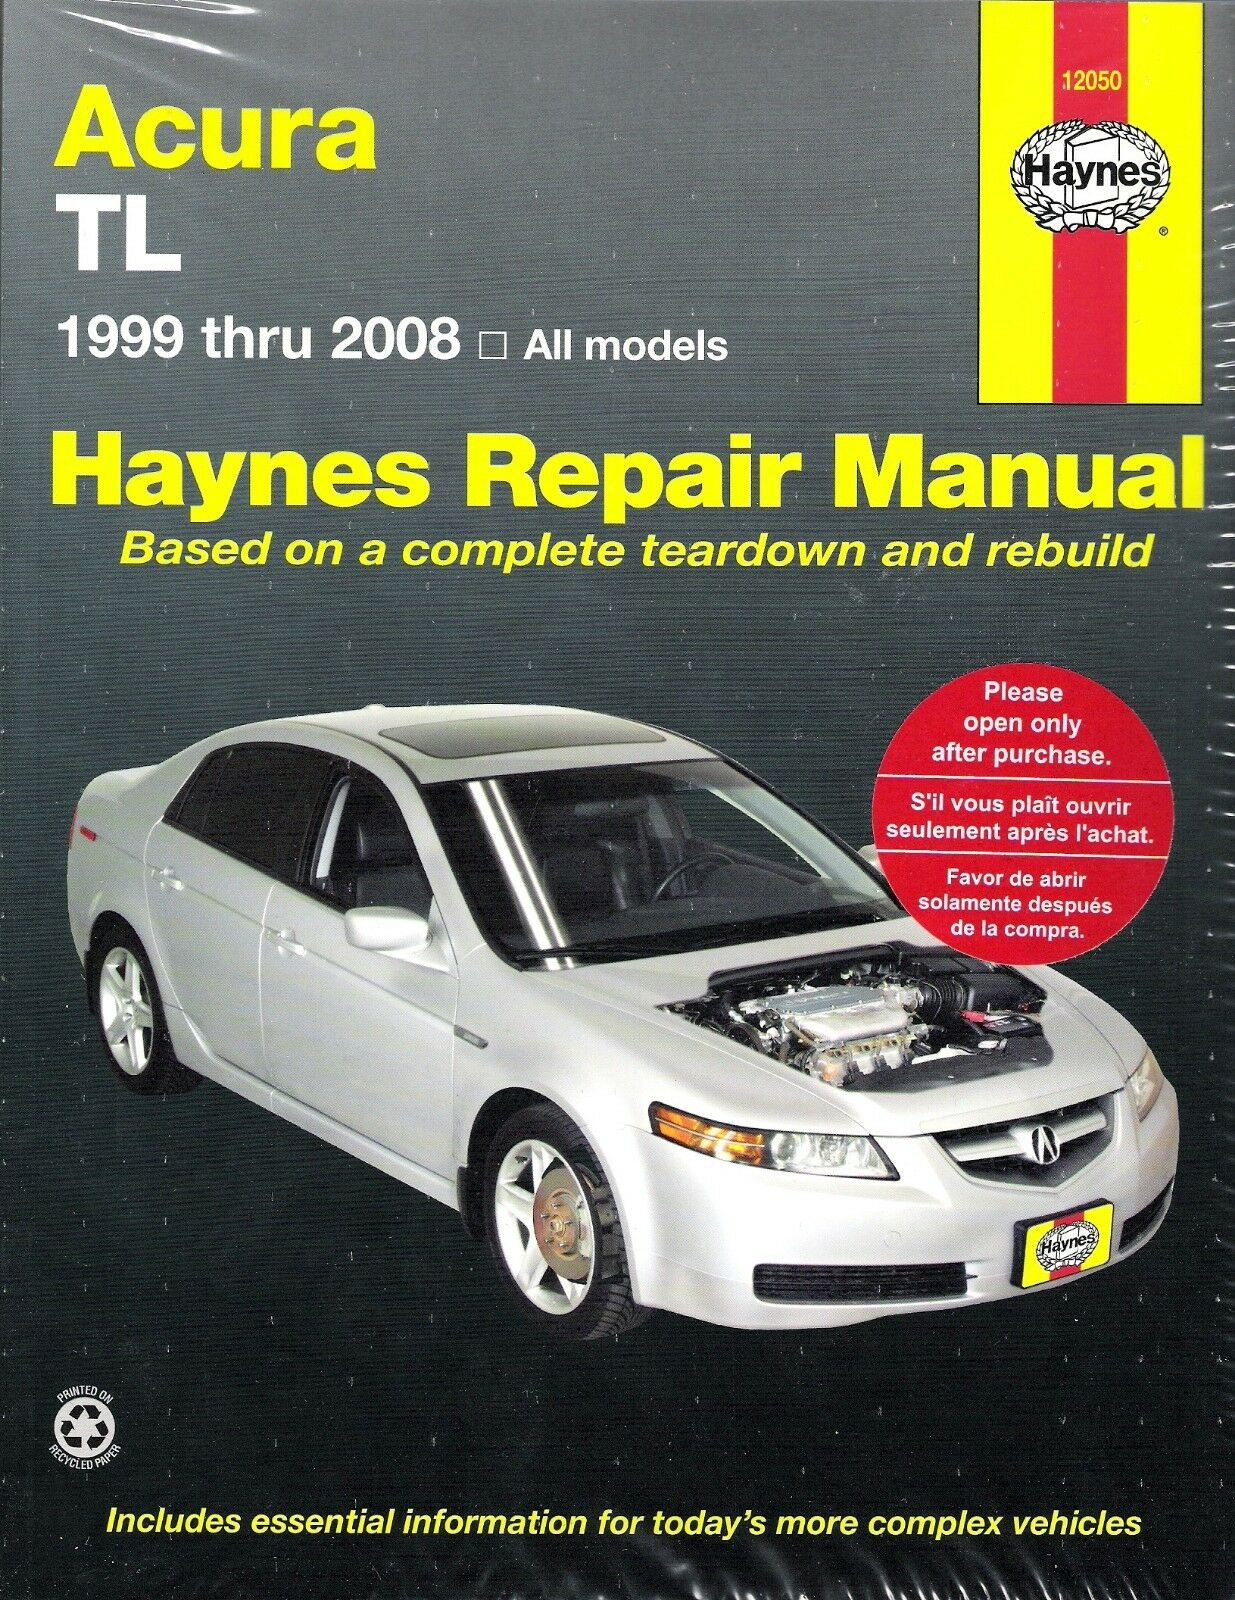 1999-2008 Acura TL Haynes Repair Service Workshop Shop Manual Book Guide  7446 1 of 1FREE Shipping See More